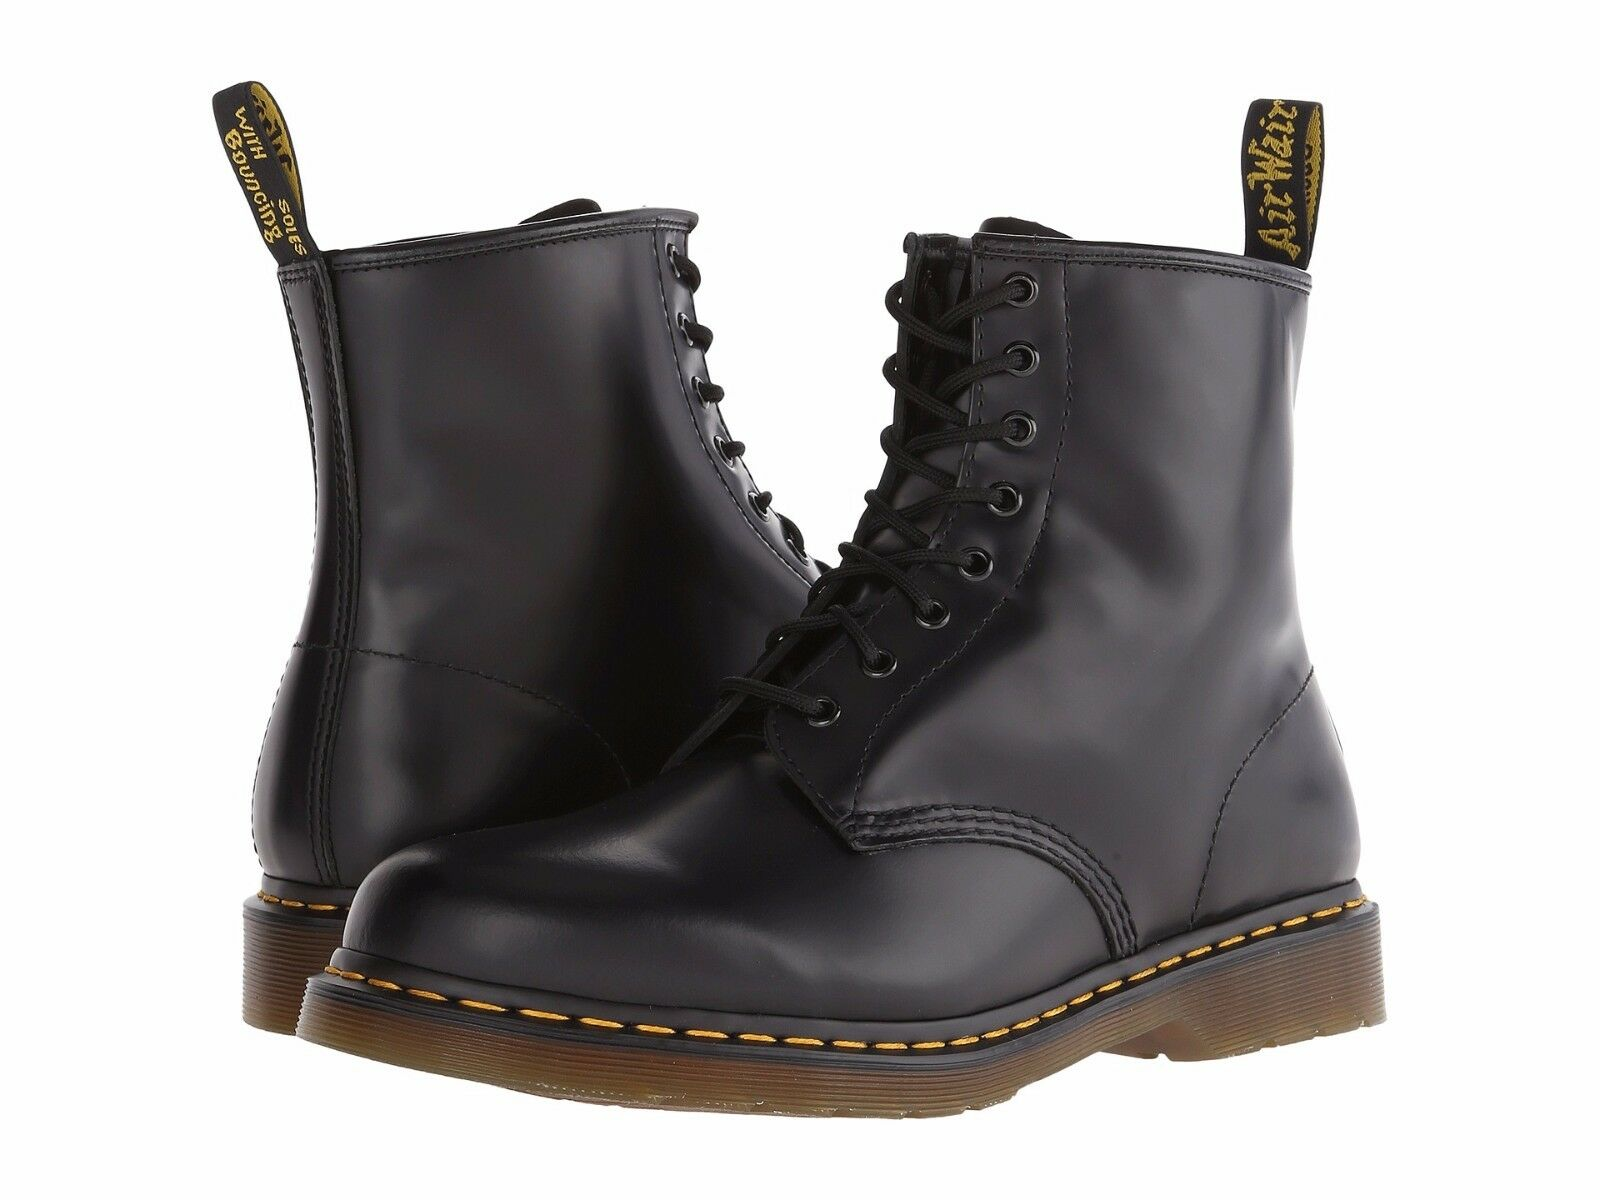 Martens 1460 MONO 8 Eye Leather Boots 14353001 BLACK SMOOTH Men/'s Shoes Dr